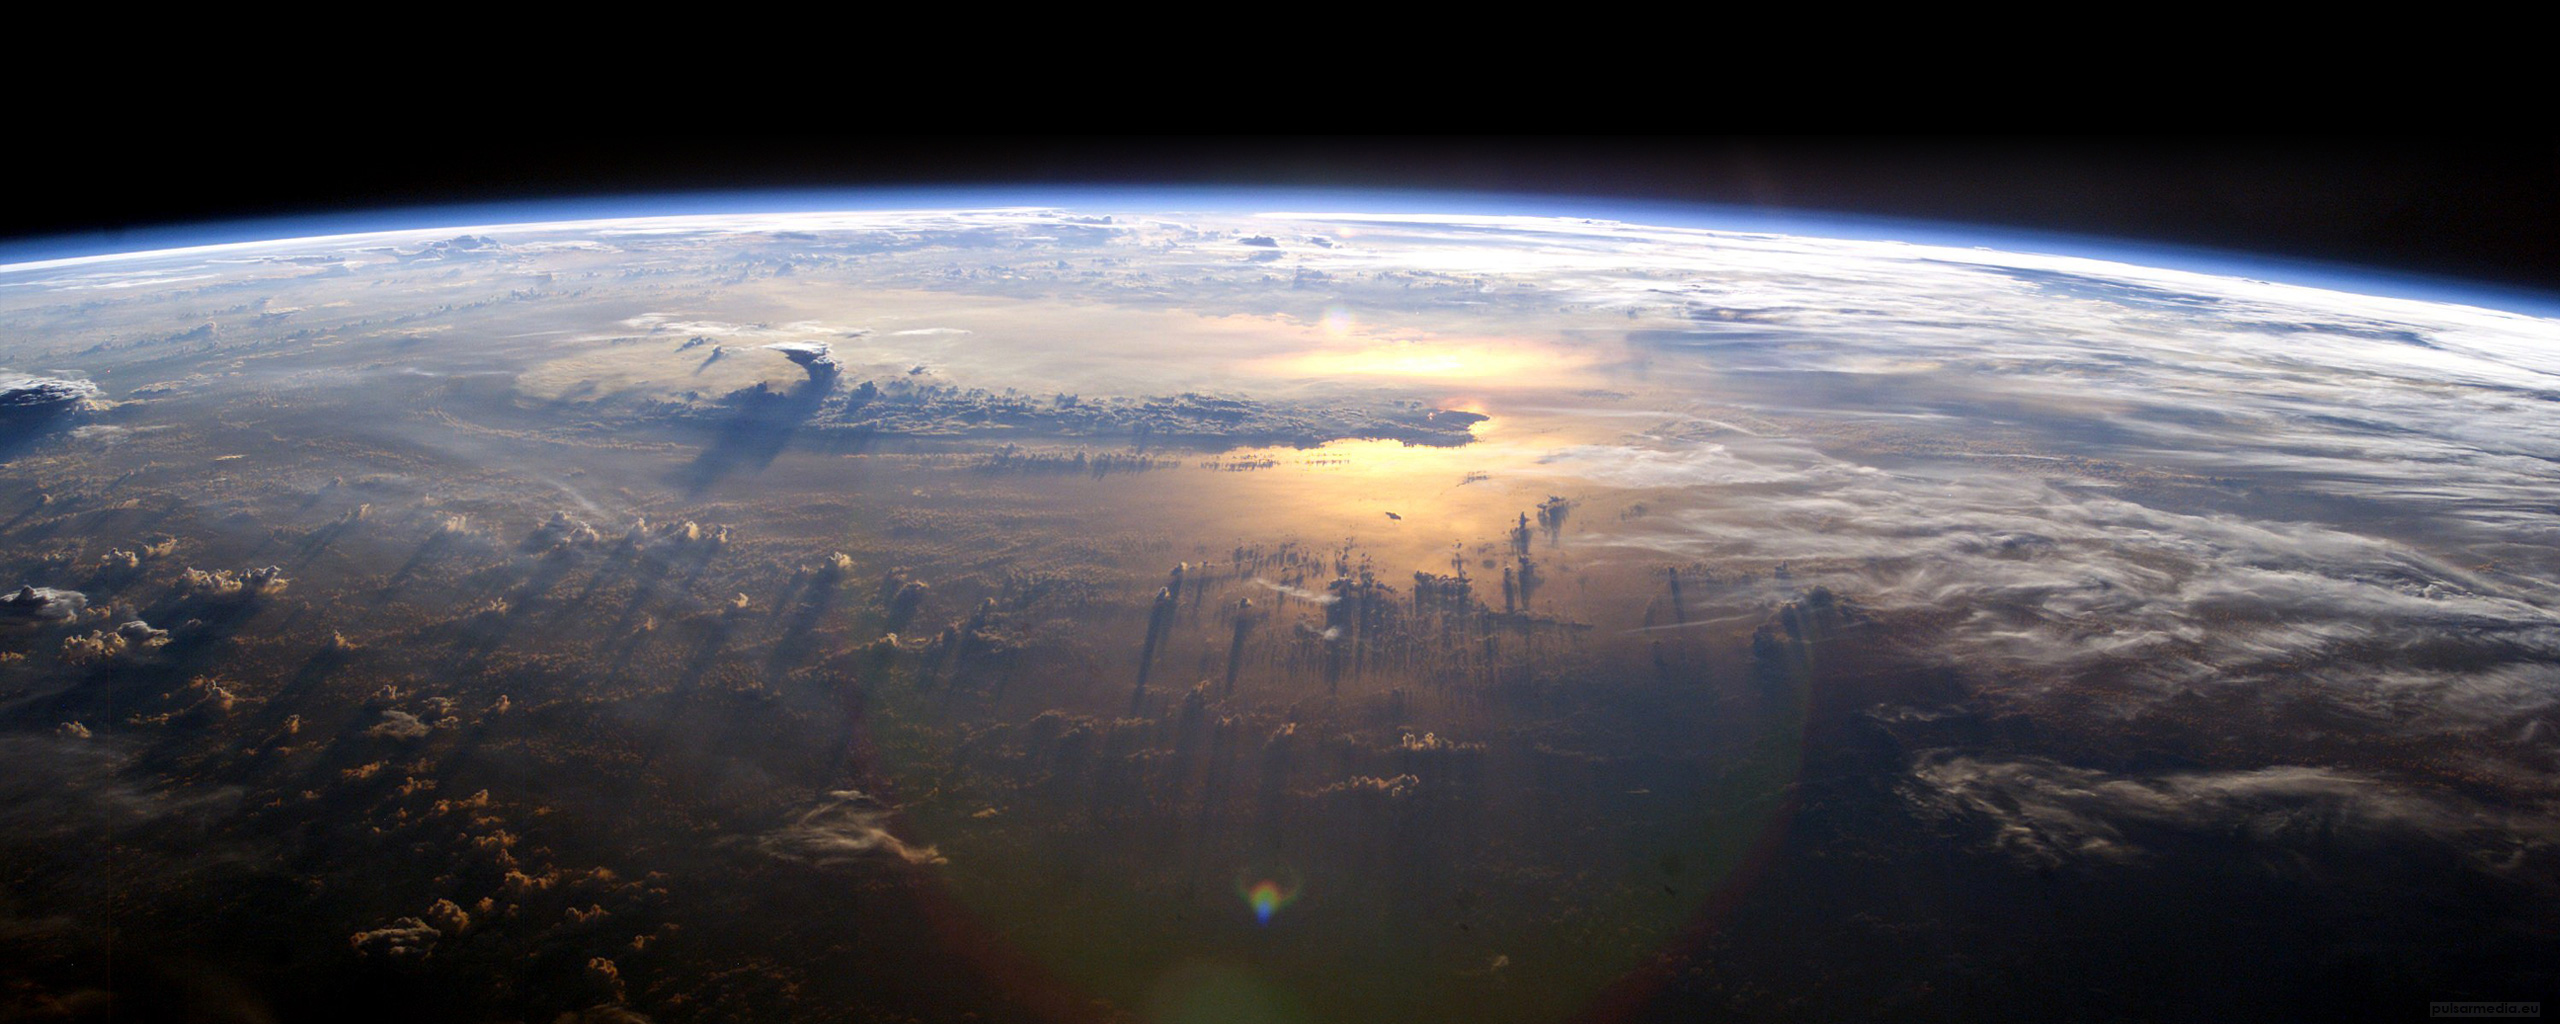 Earth From Space 2560x1024 Dual Screen Wallpaper - Earth From Space ...